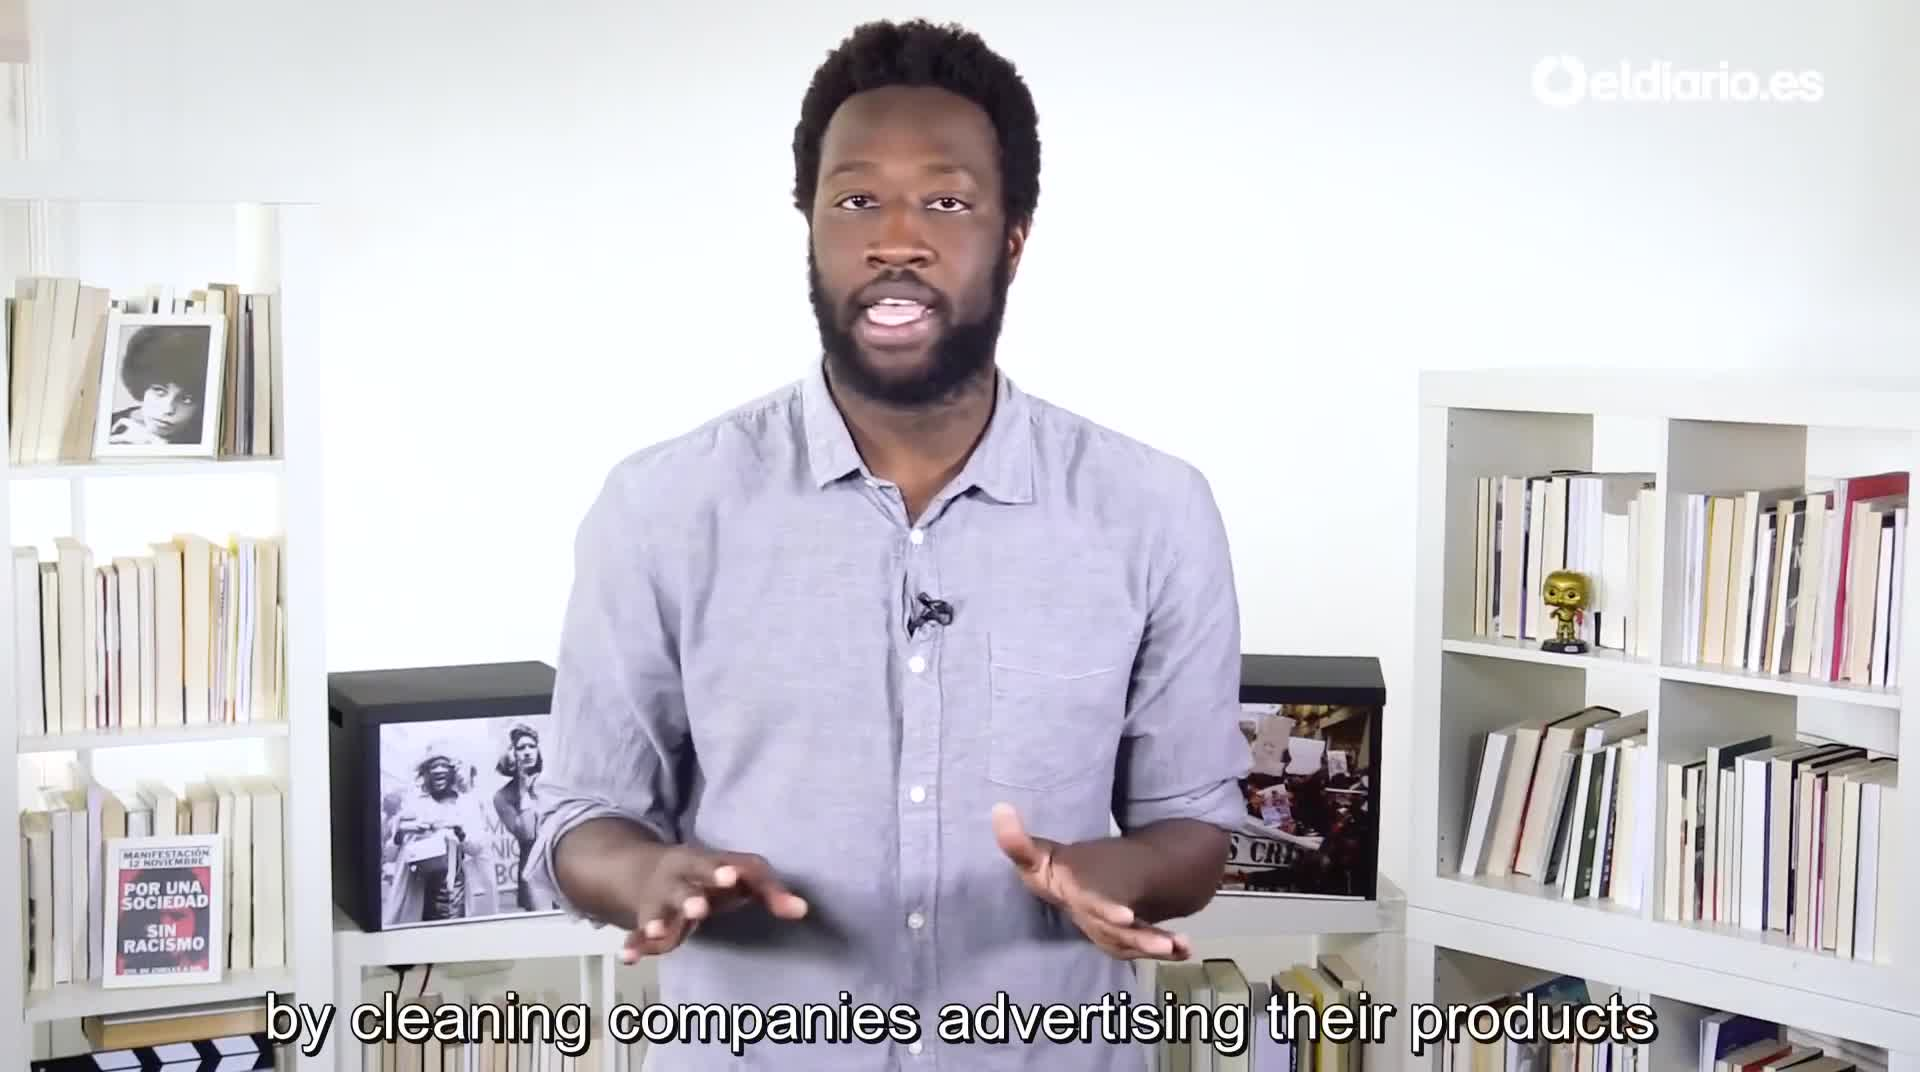 The most racist advertisements in history